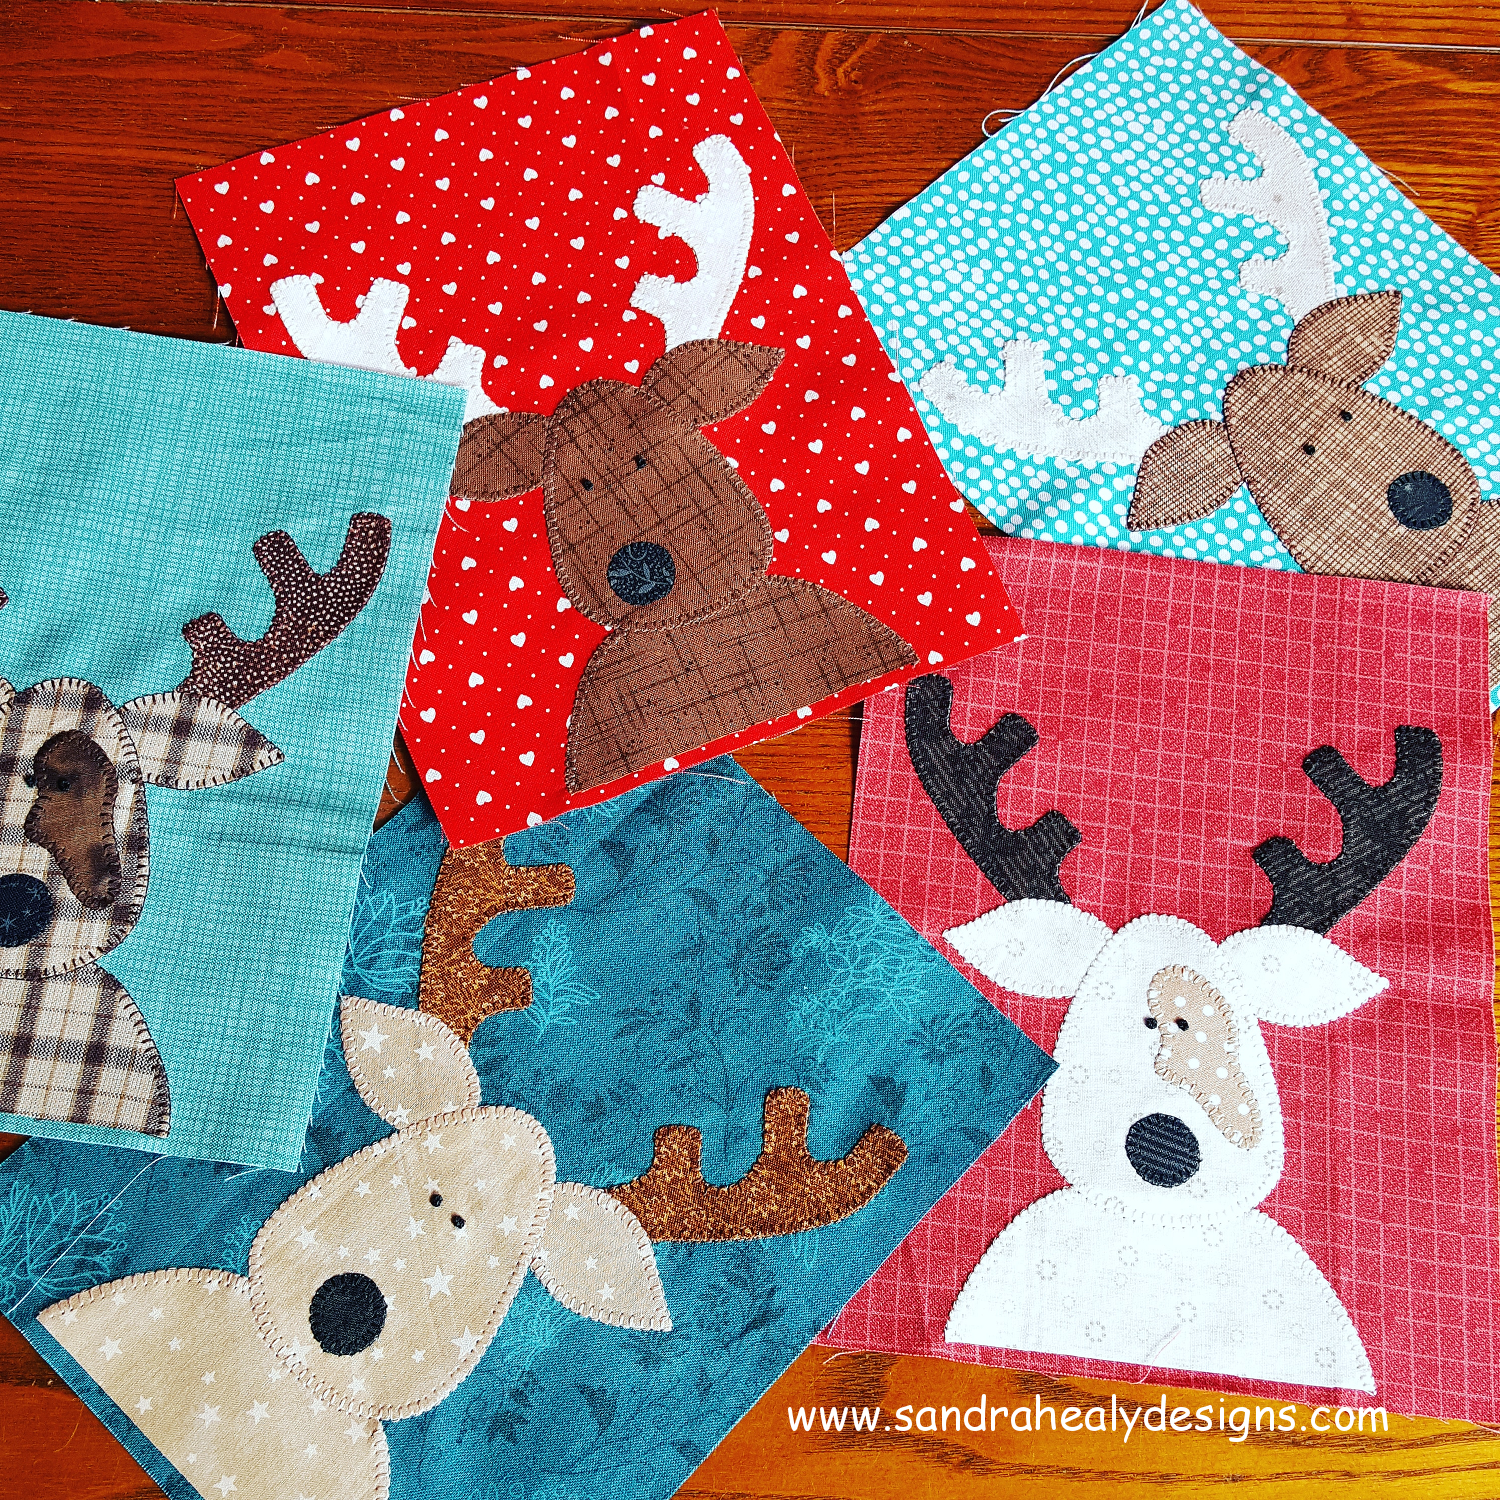 Christmas Quilt Patterns.The Reindeer Crew Christmas Quilt Pattern Sandra Healy